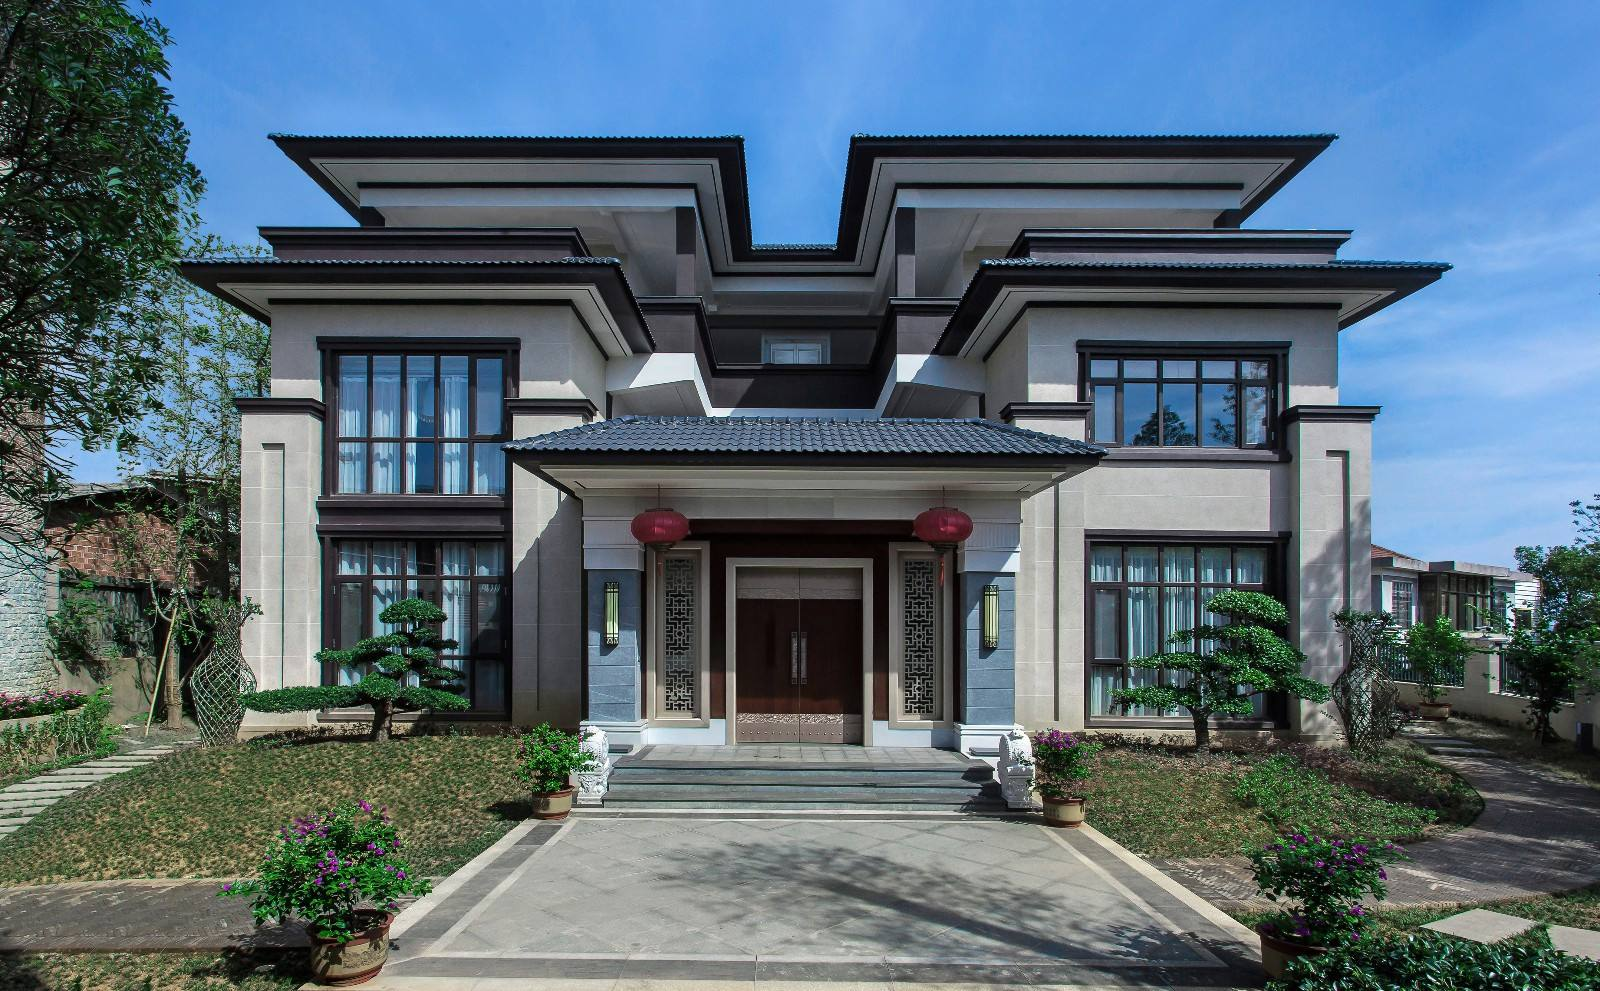 Pure Chinese villa design quote_where can i buy architectural drawings and model design-hunan xinju construction engineering Co., ltd.